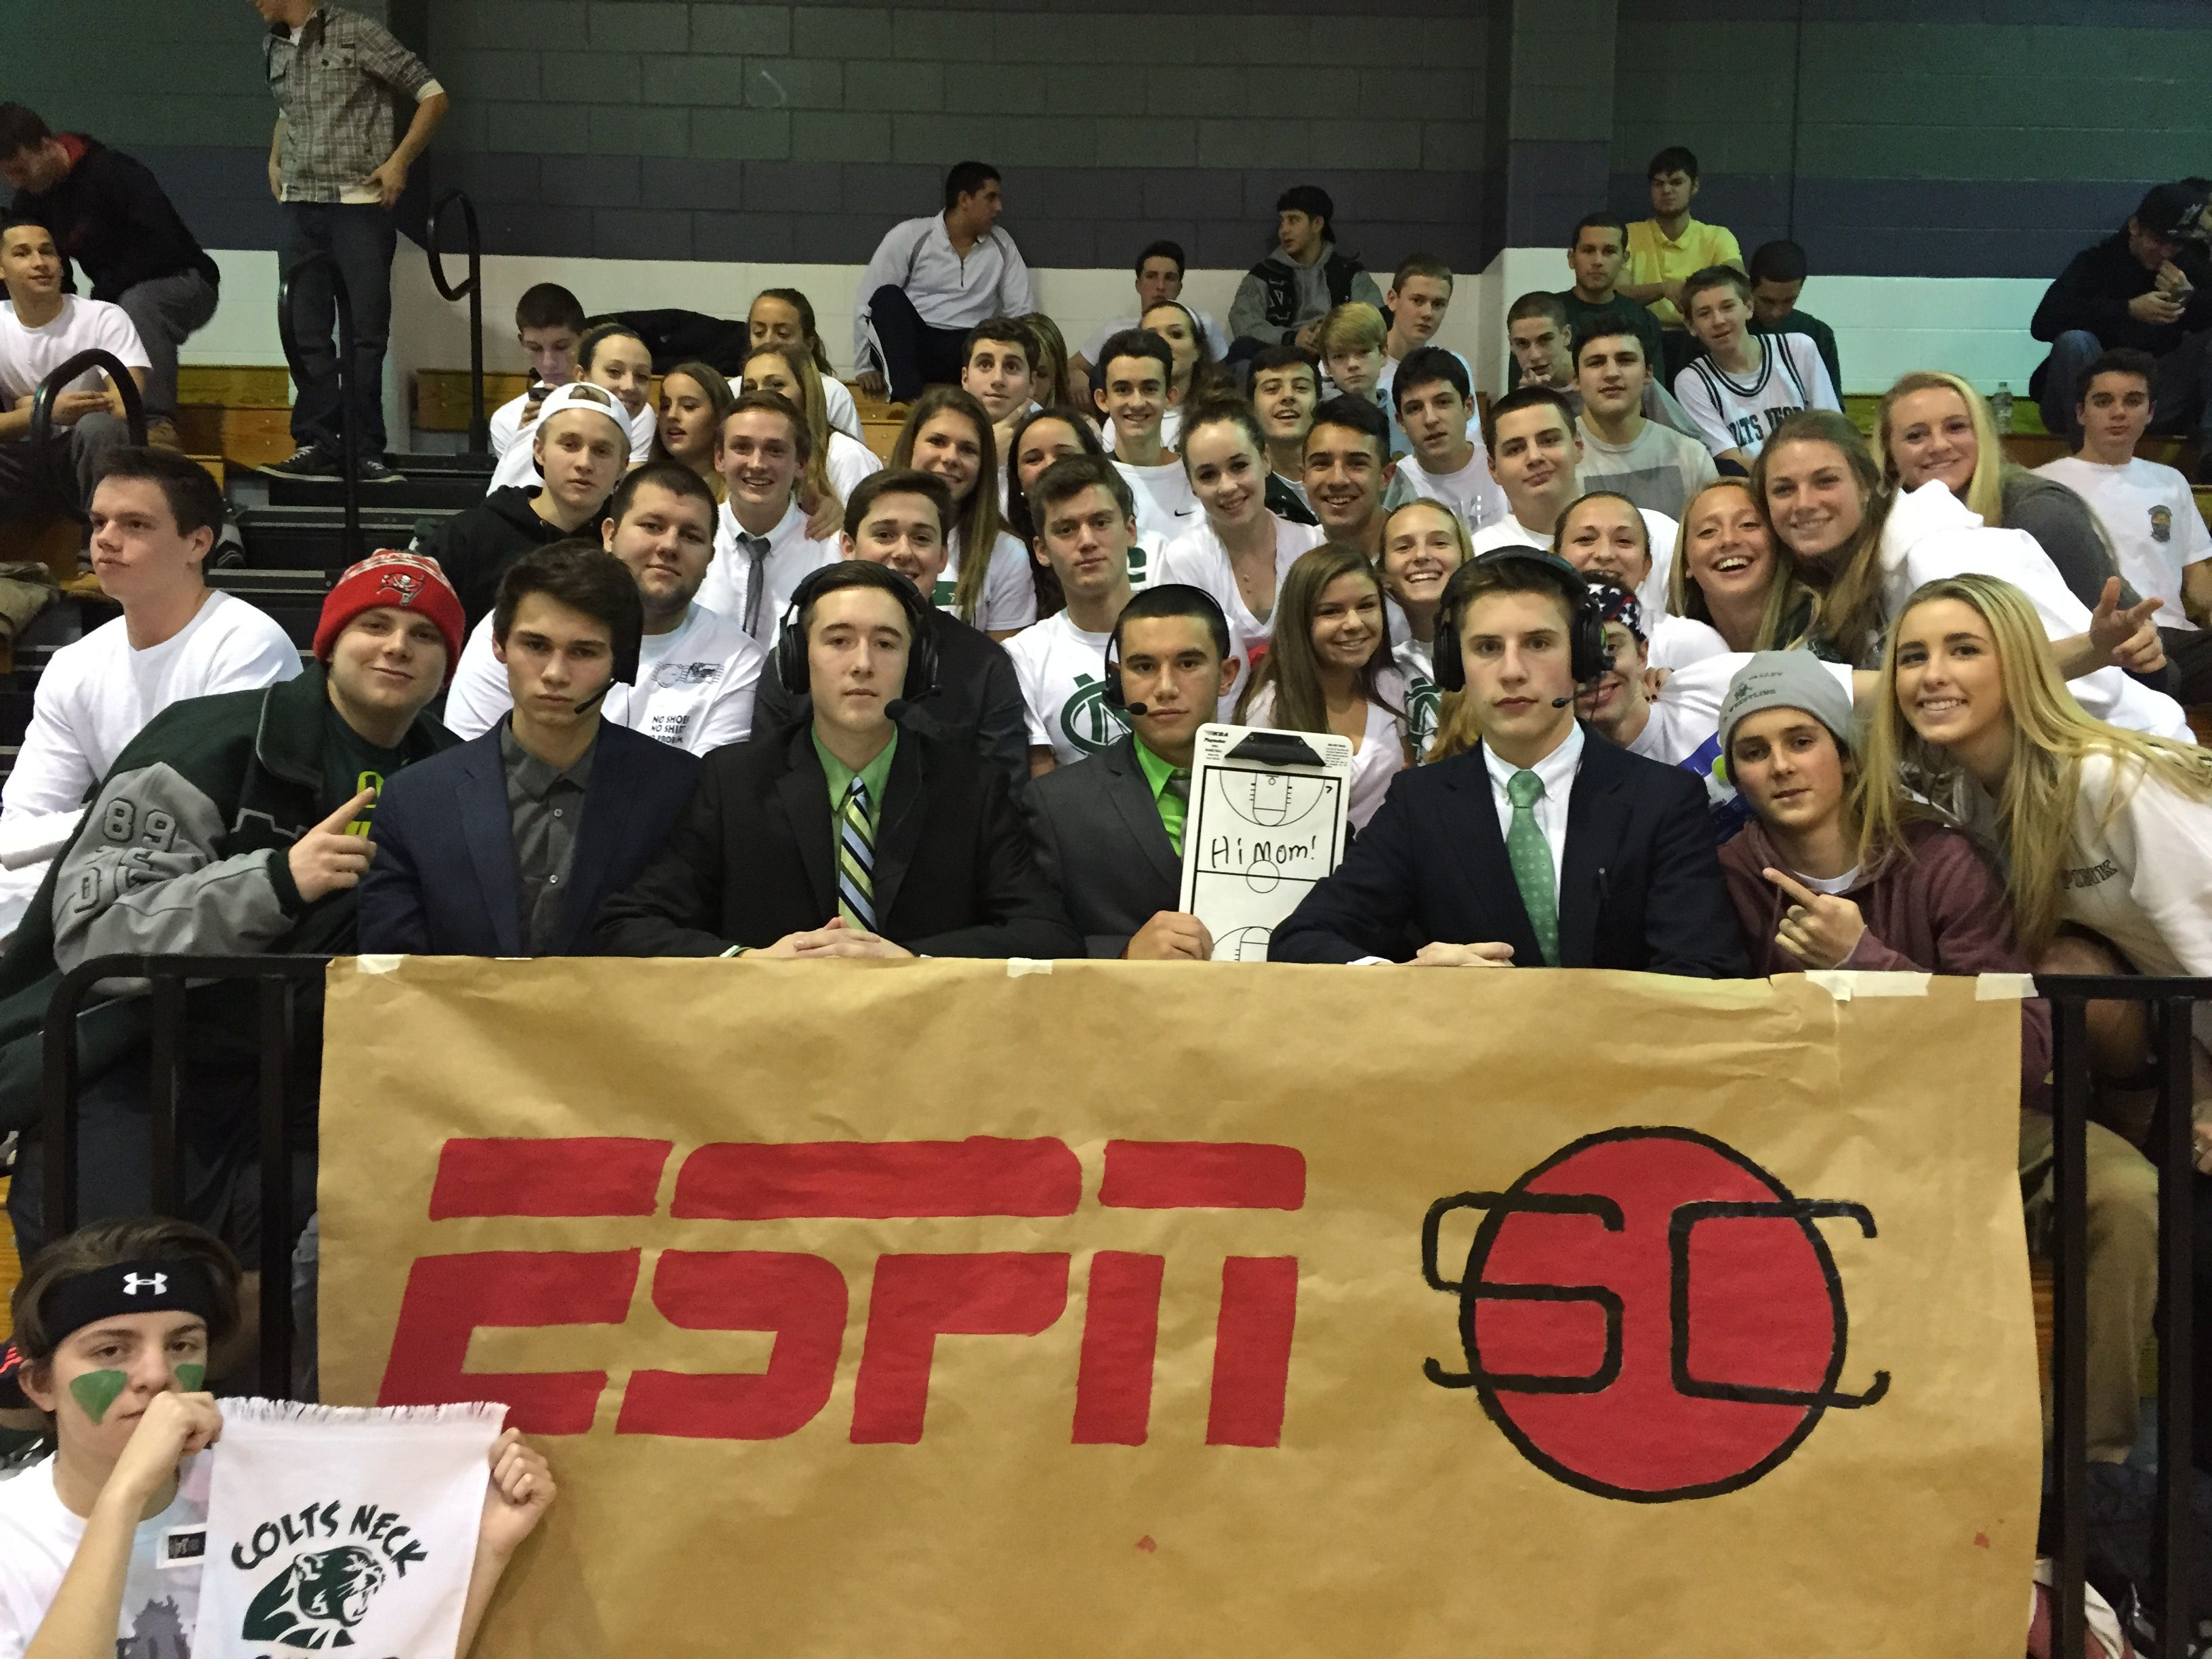 Colts Neck student section at a boys basketball game